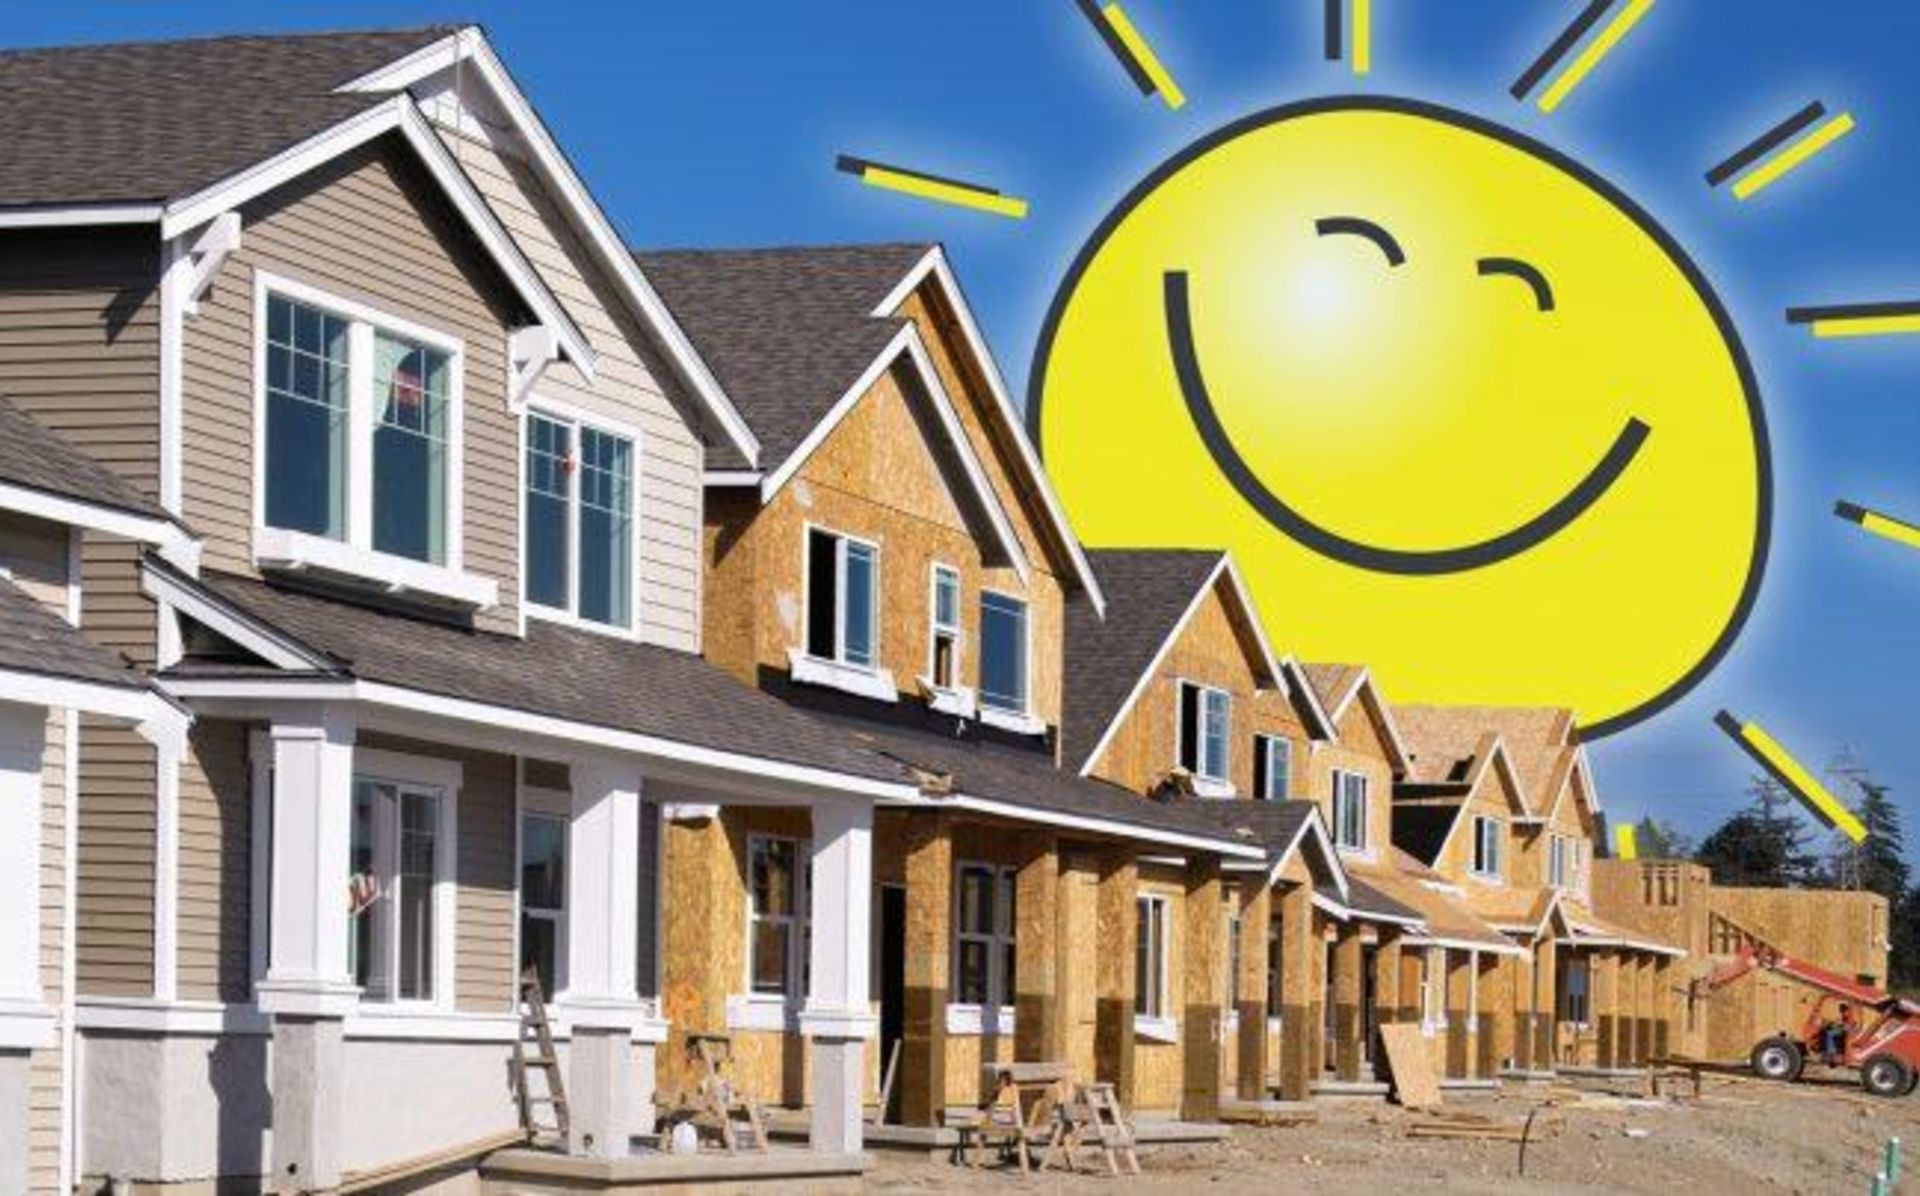 NJ Home Prices to Continue Rising in 2022